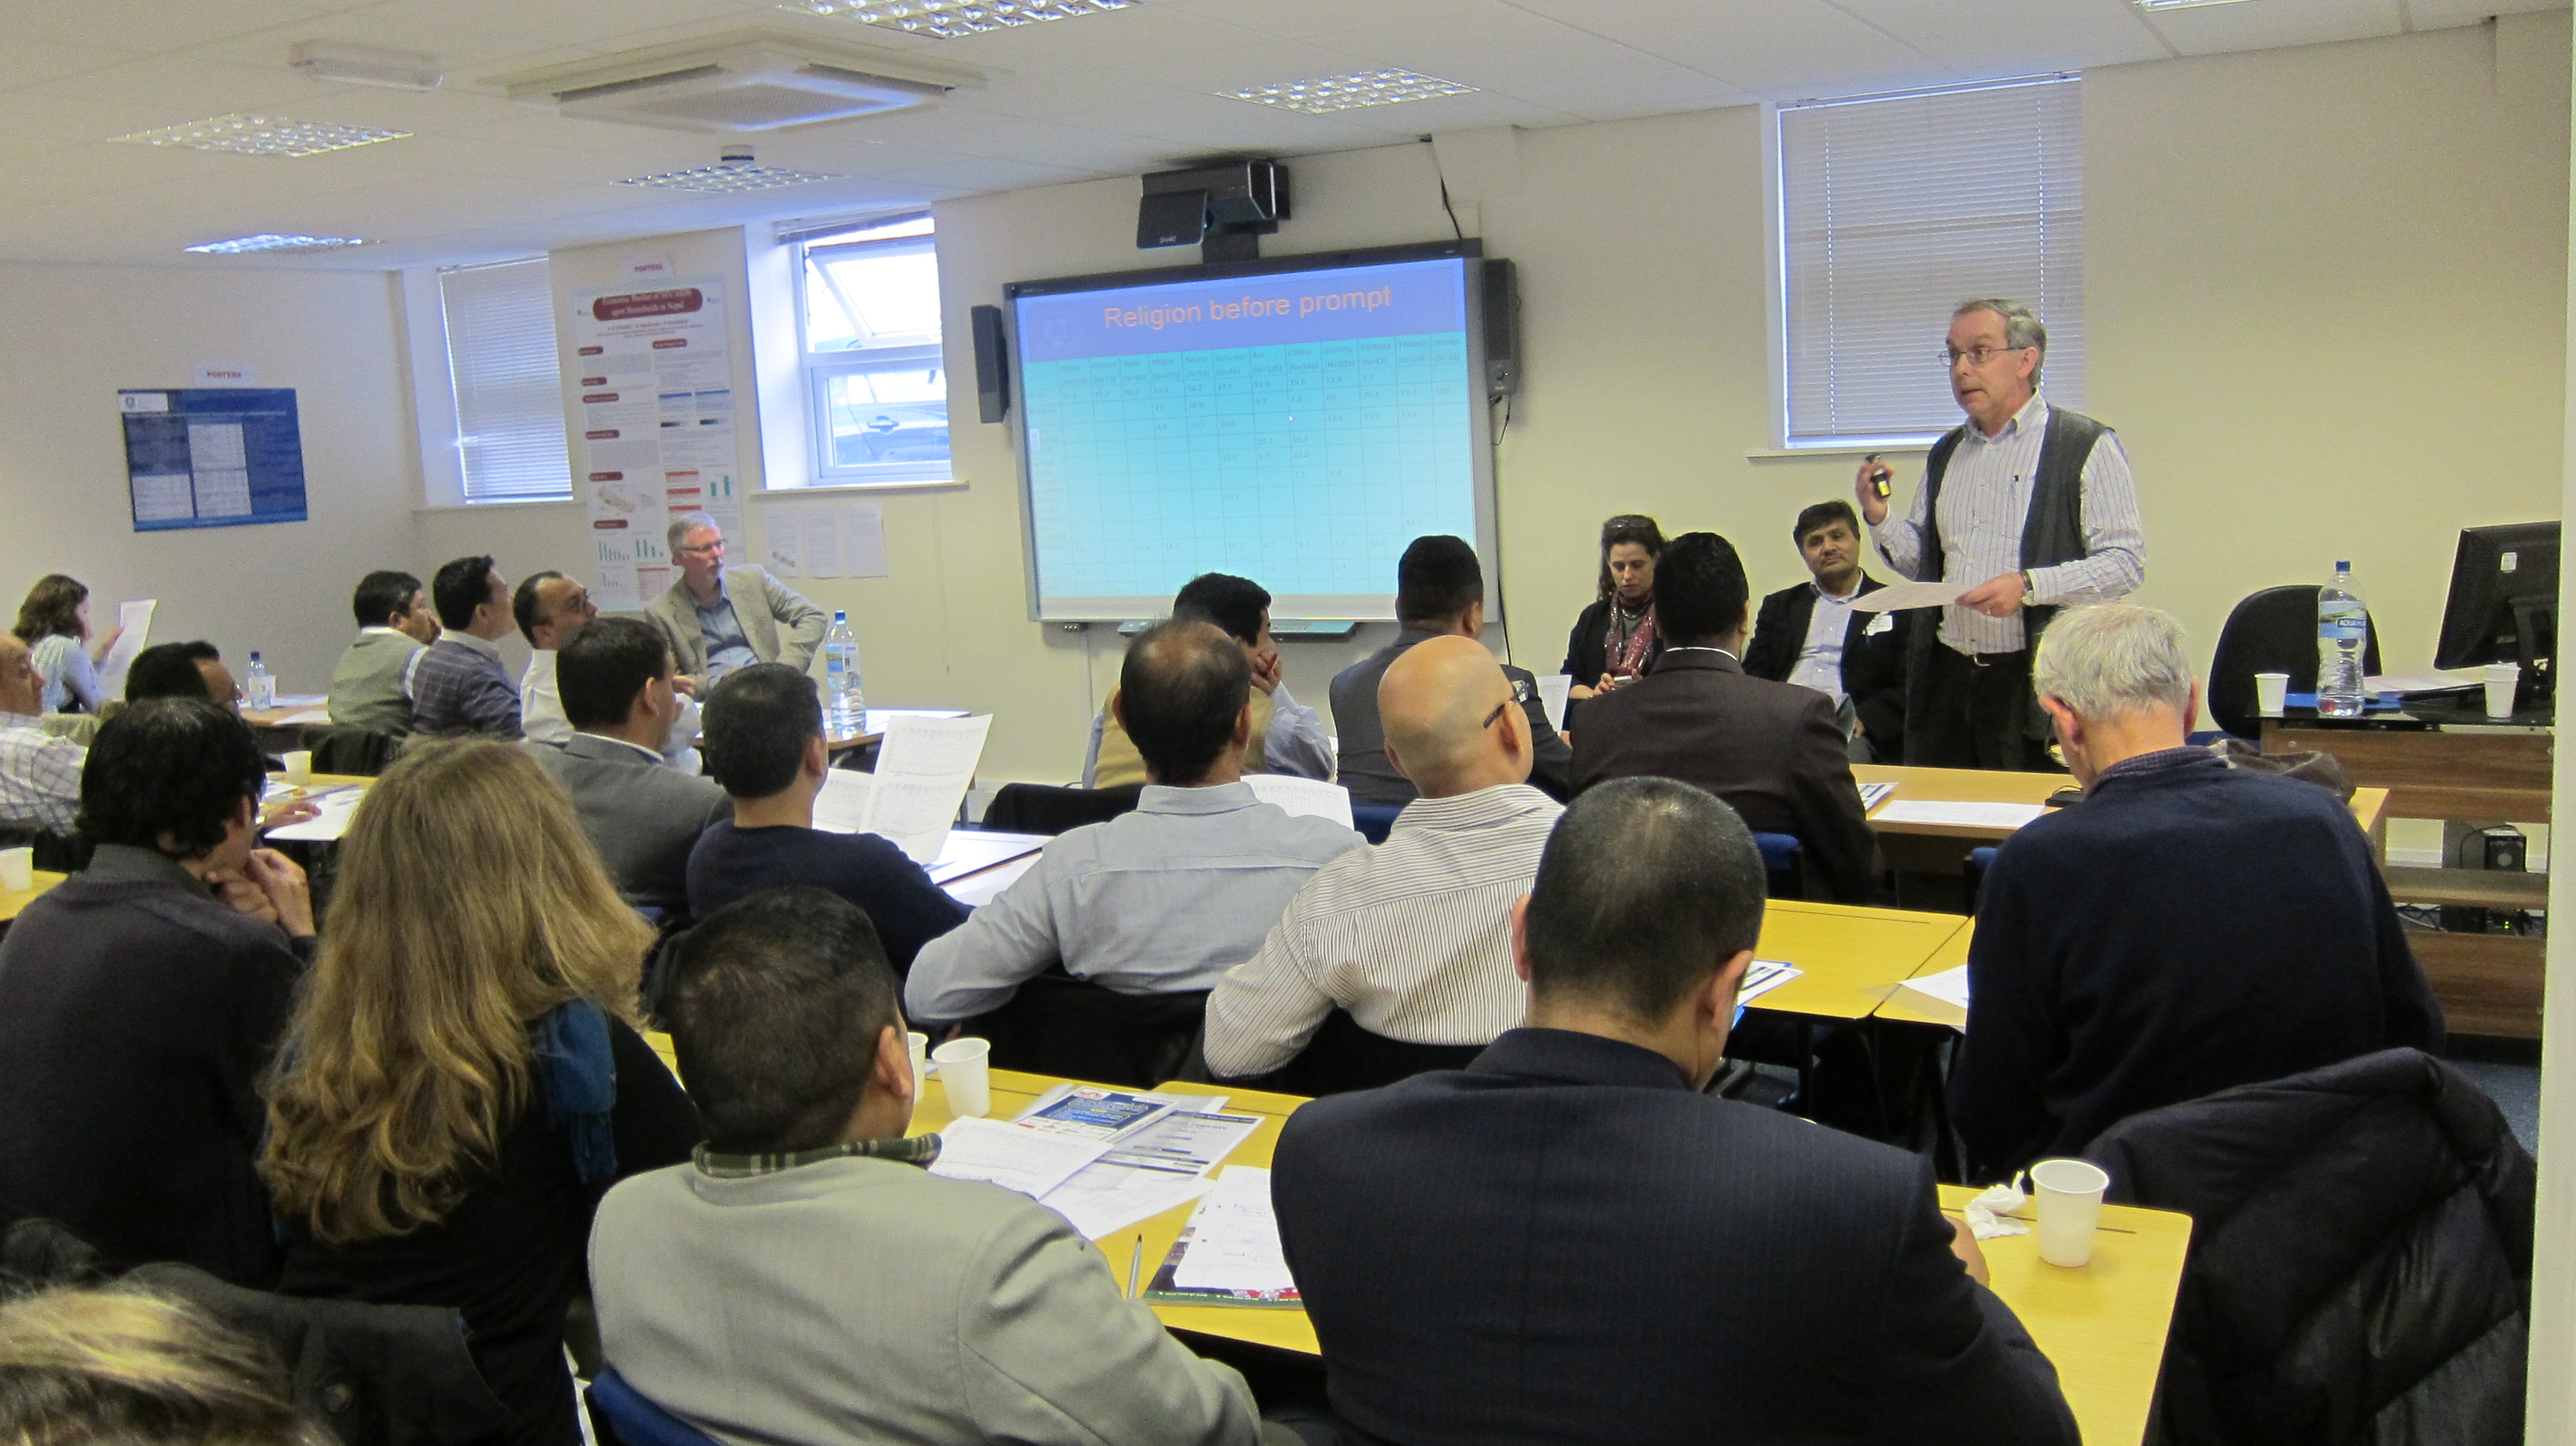 Nepal Study Days Archives - Britain - Nepal Academic Council